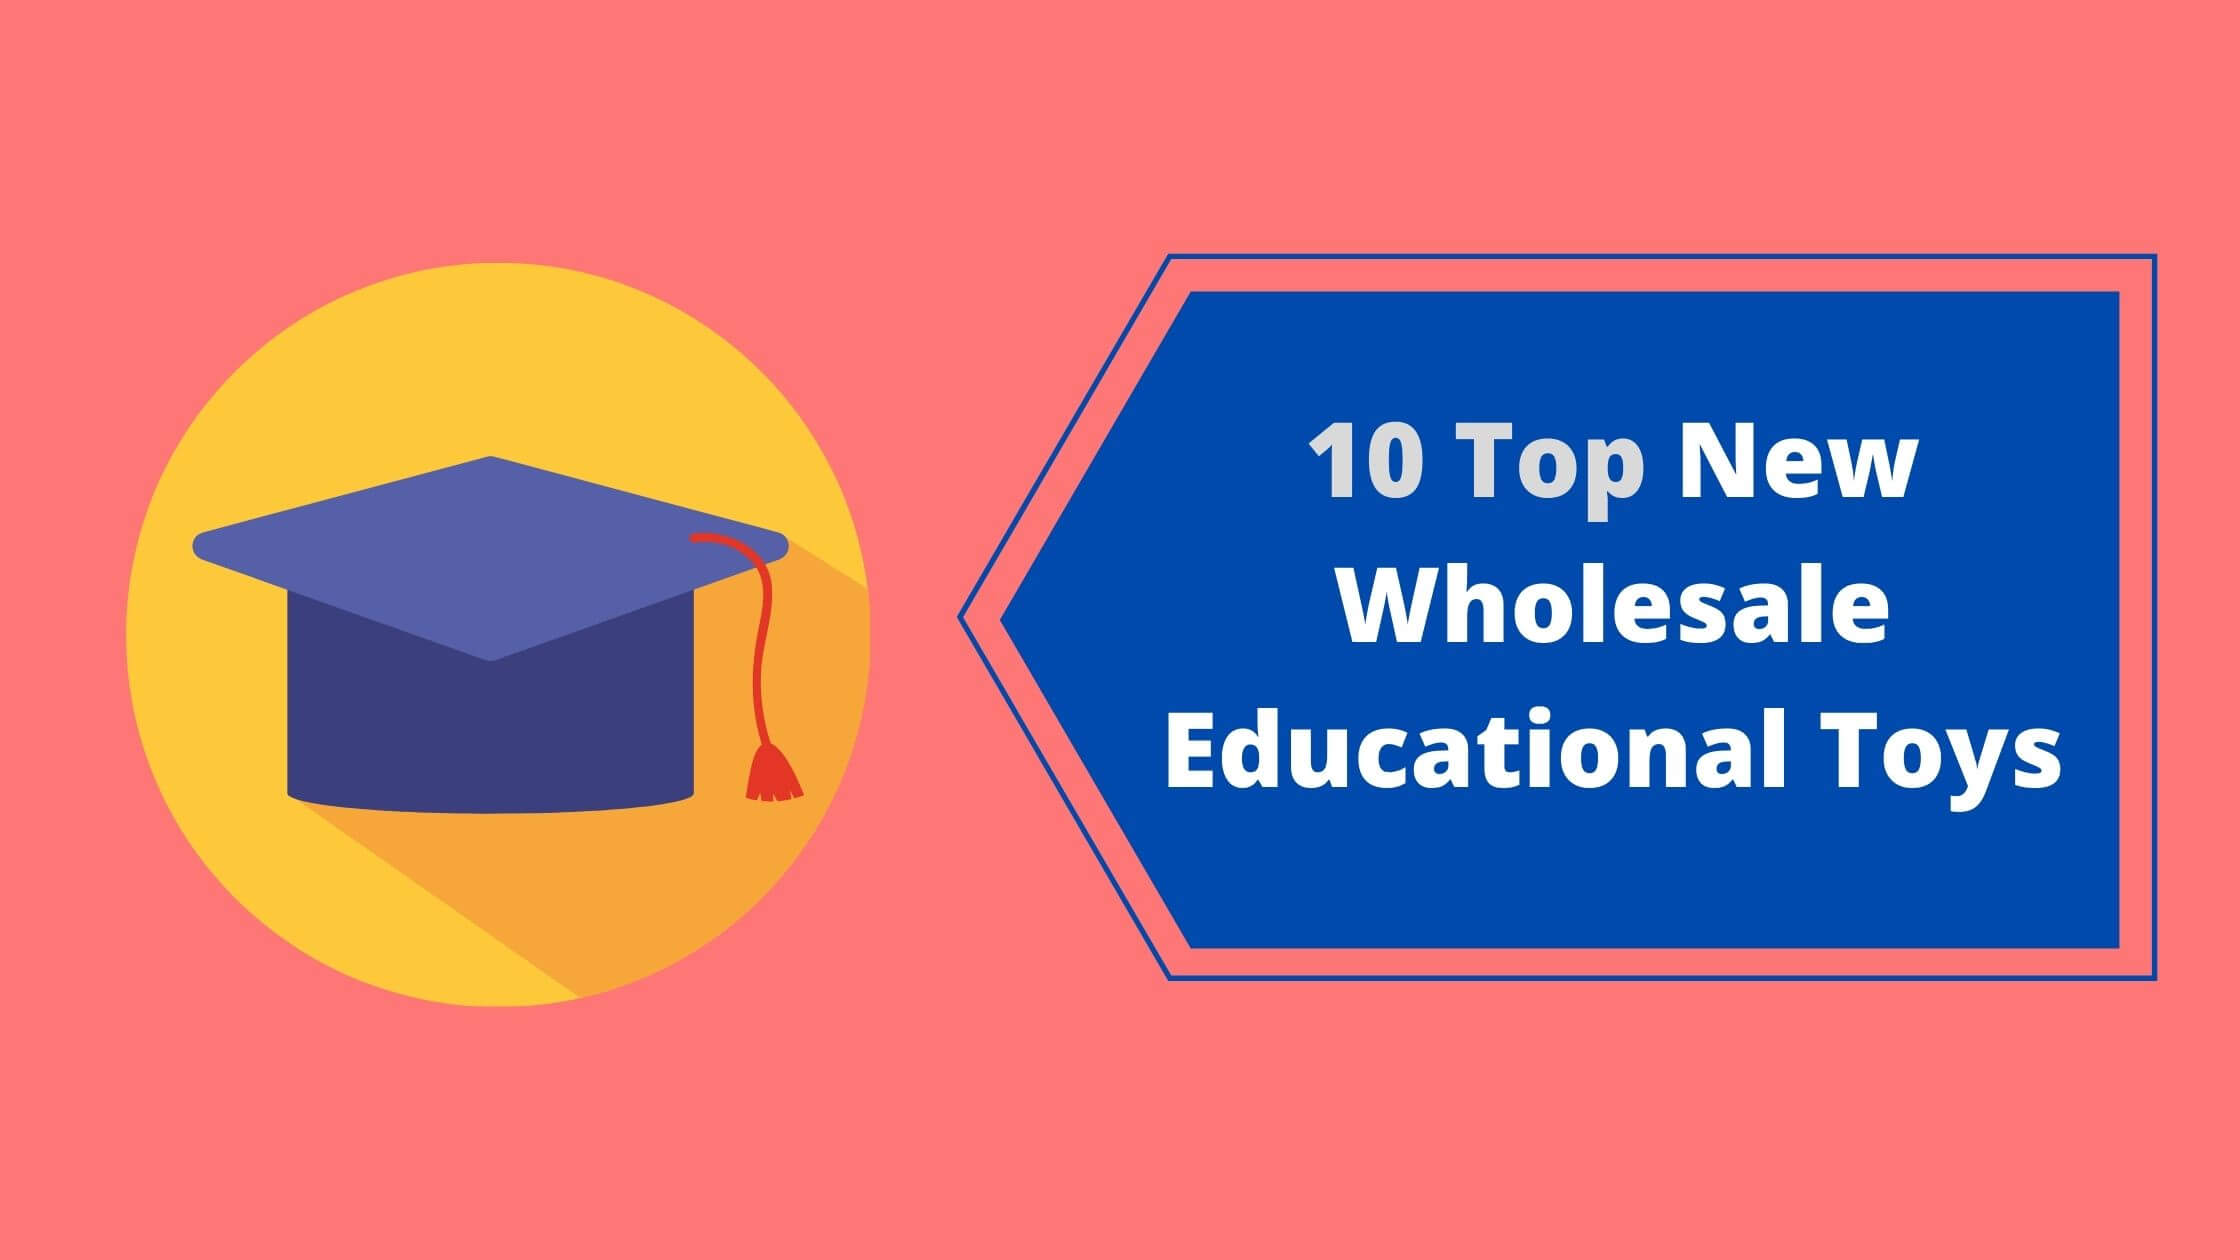 You are currently viewing 10 Top New Wholesale Educational Toys for Toddlers and Kids